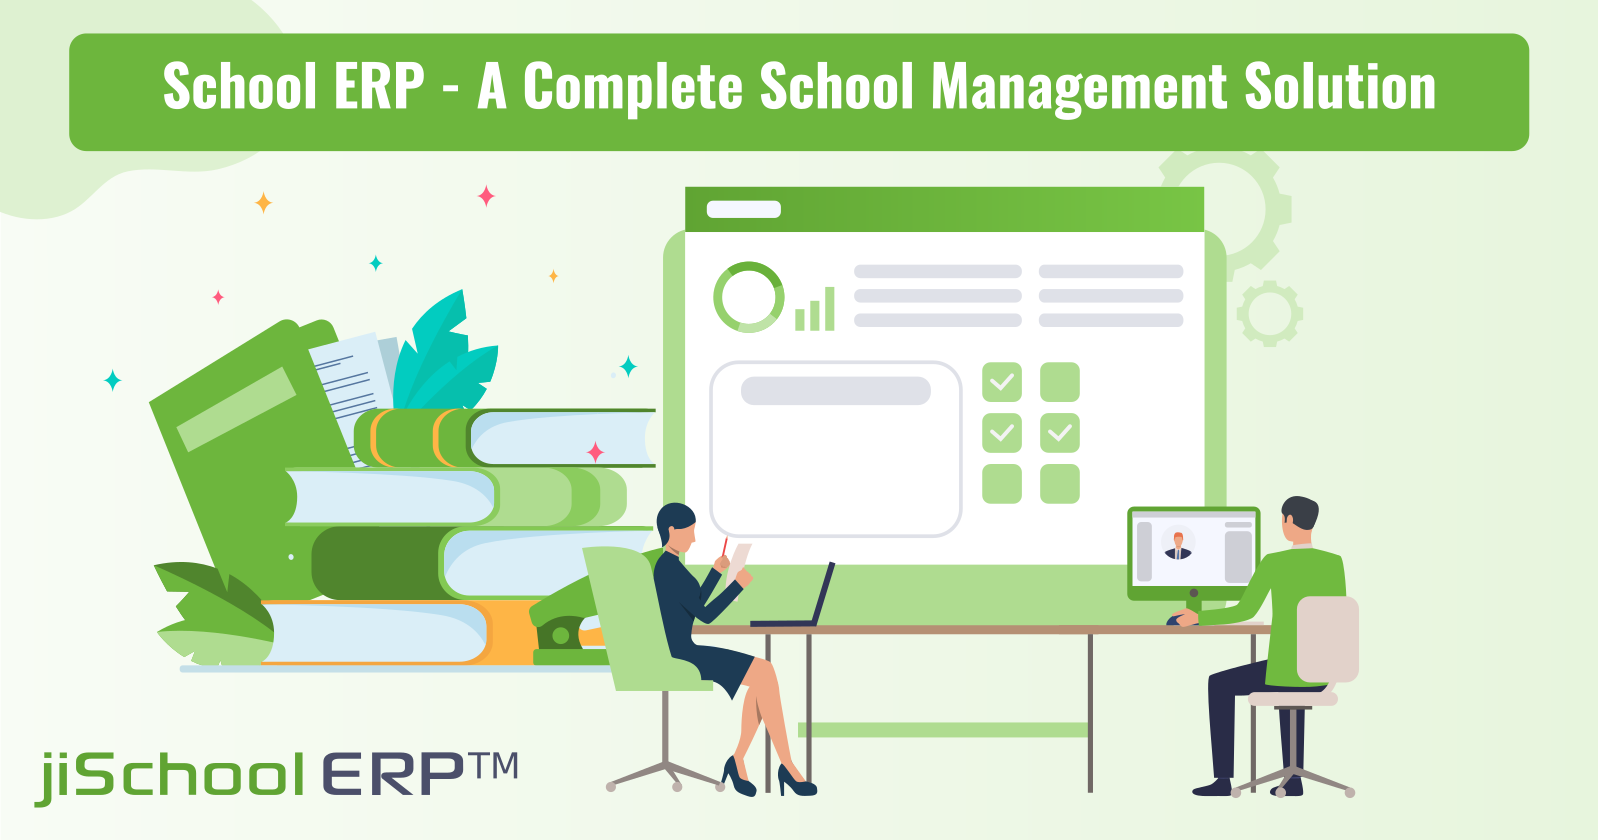 School ERP - A Complete School Management Solution